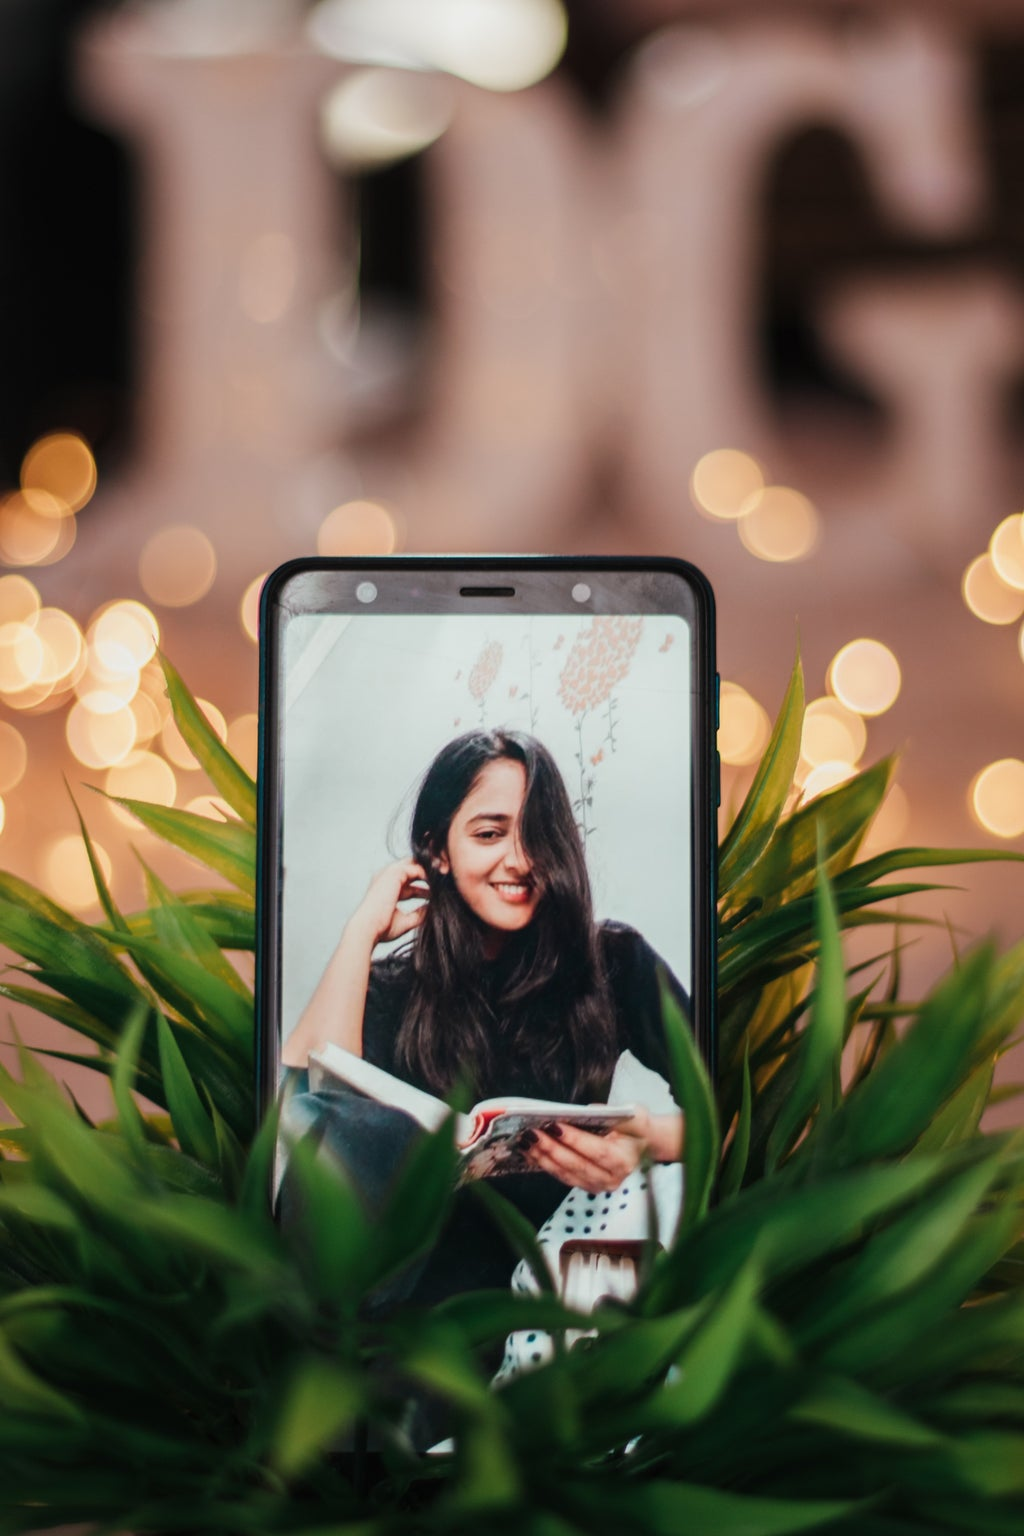 a picture of a picture of a woman on a phone, which is tucked into a plant with fairy lights behind it